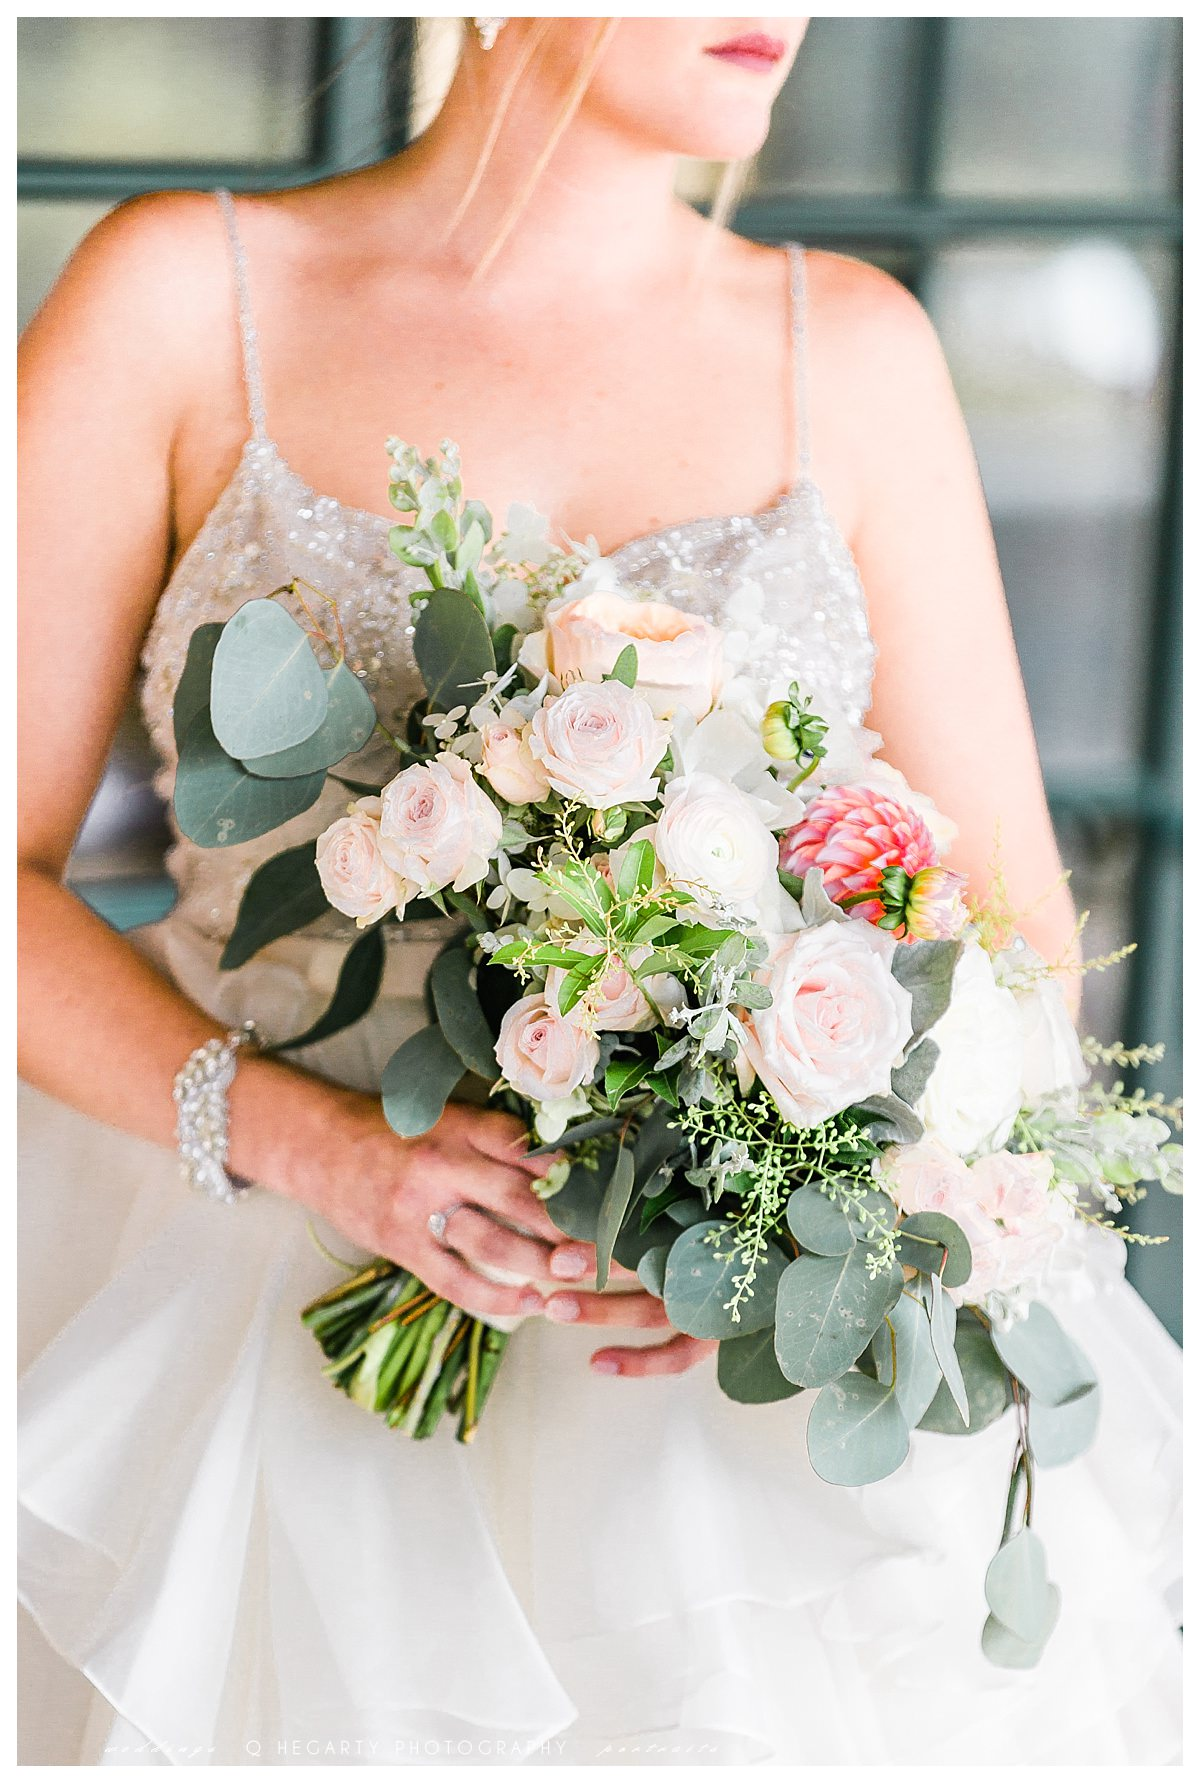 lush summer peach and blush bridal bouquet wedding photographer South Berwick ME Q Hegarty Photographer